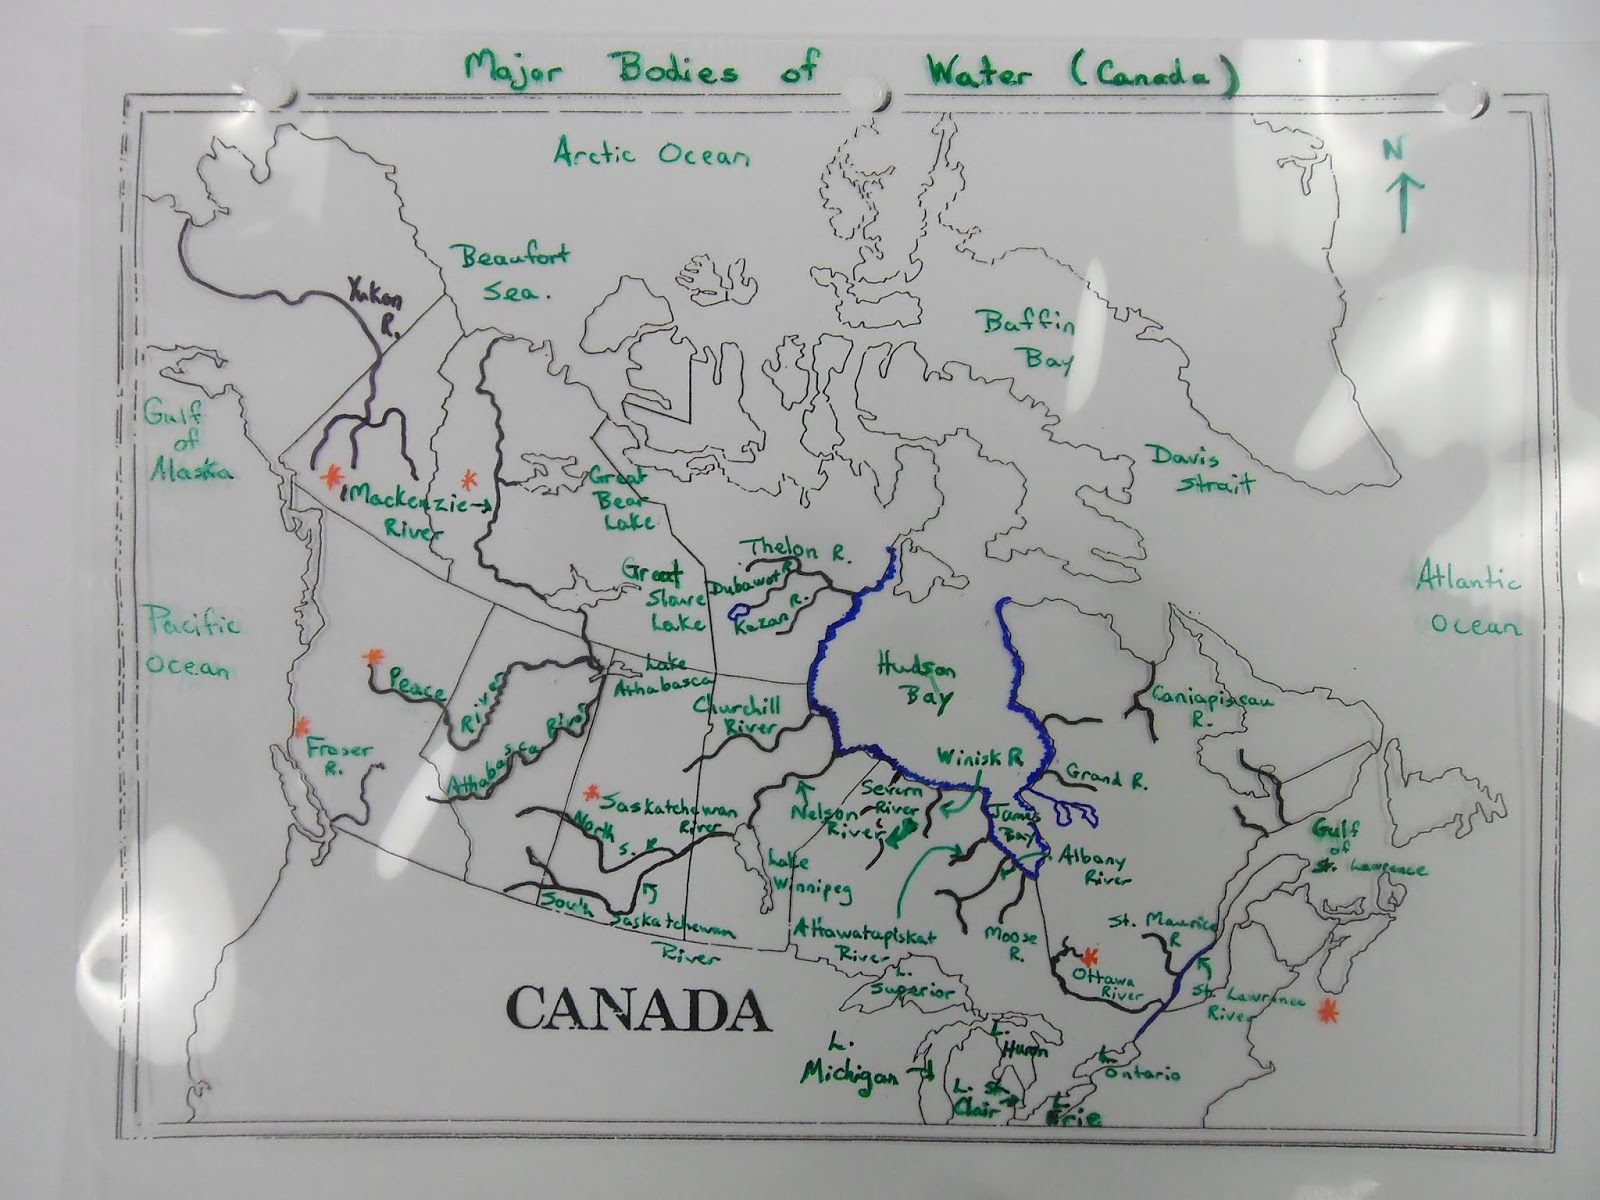 Bodies Of Water Canada Map.7f Canadian Rivers And Major Bodies Of Water Map